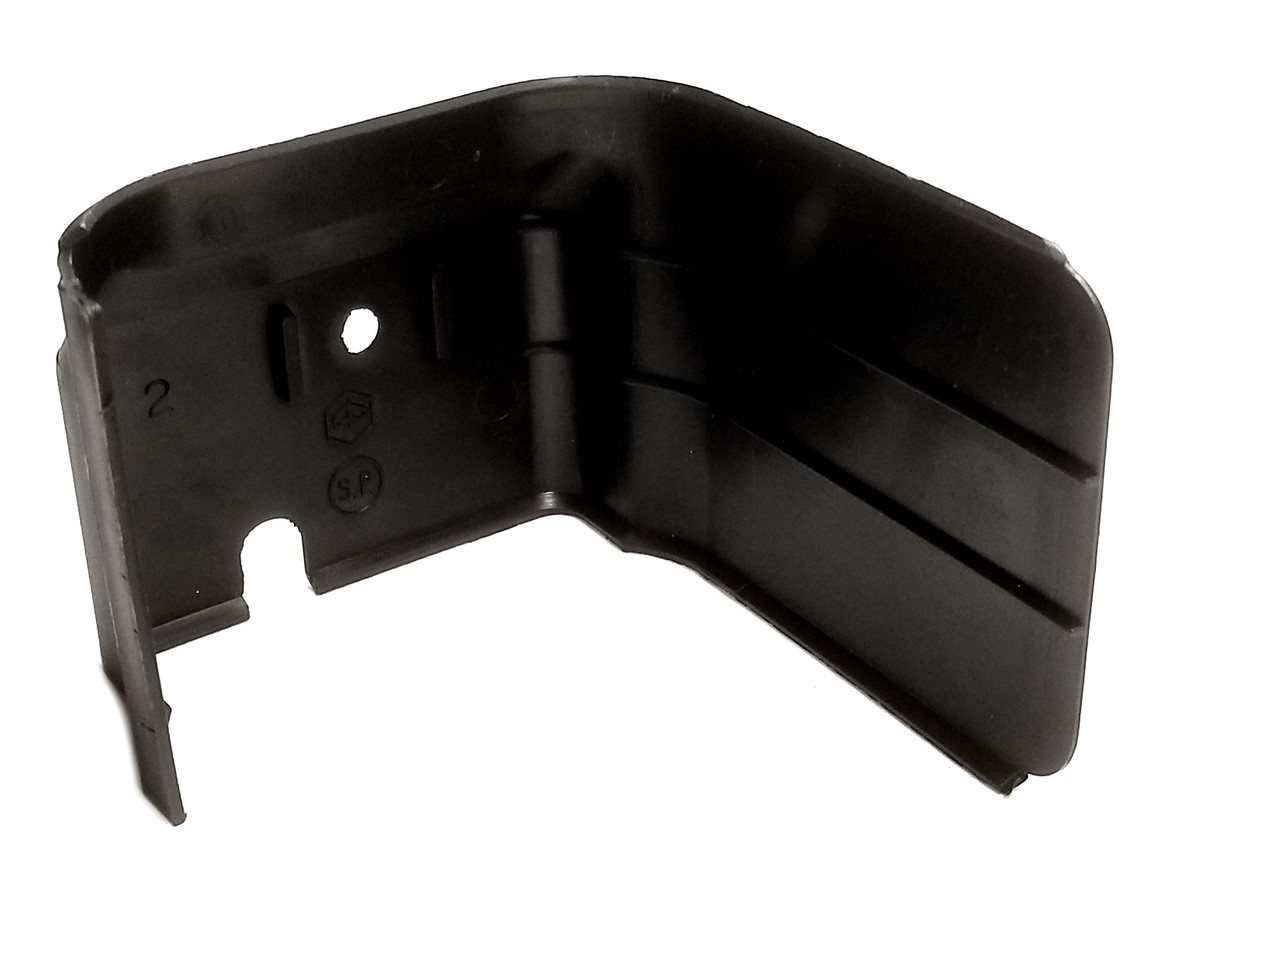 Vespa Piaggio Kinetic Cylinder Cover / Cowl - Black